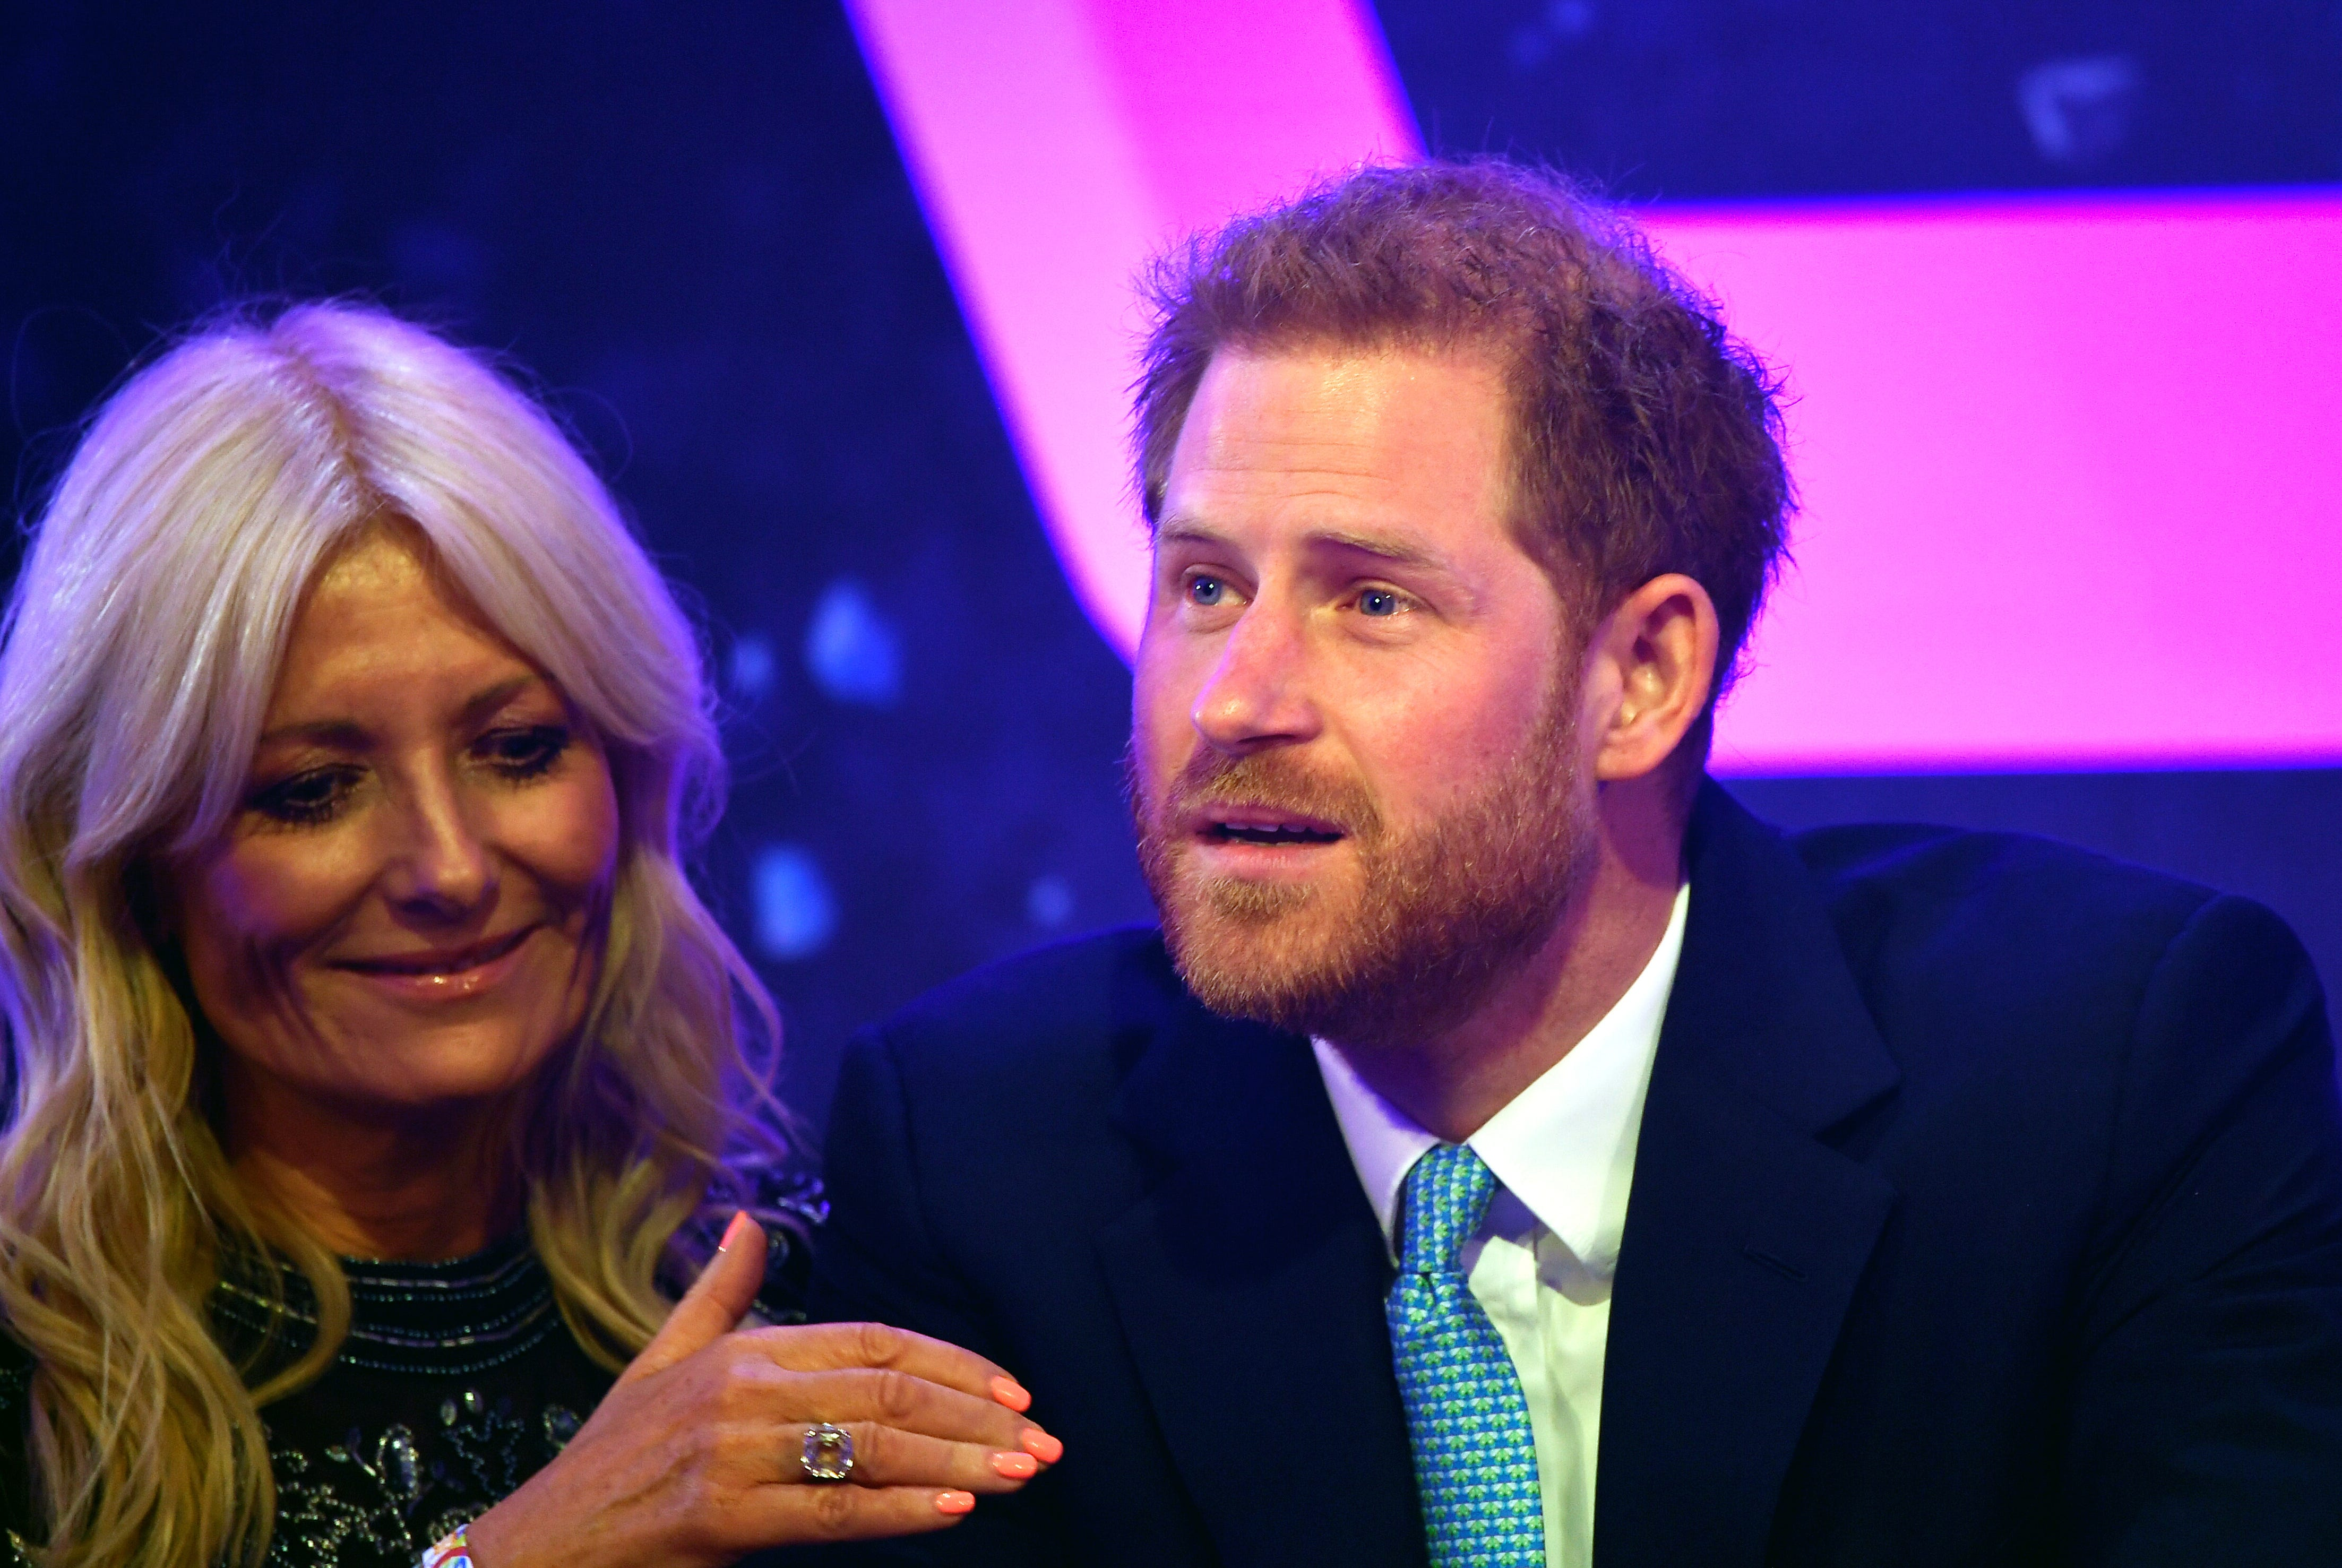 Prince Harry chokes up about Archie and being a dad in speech at WellChild awards